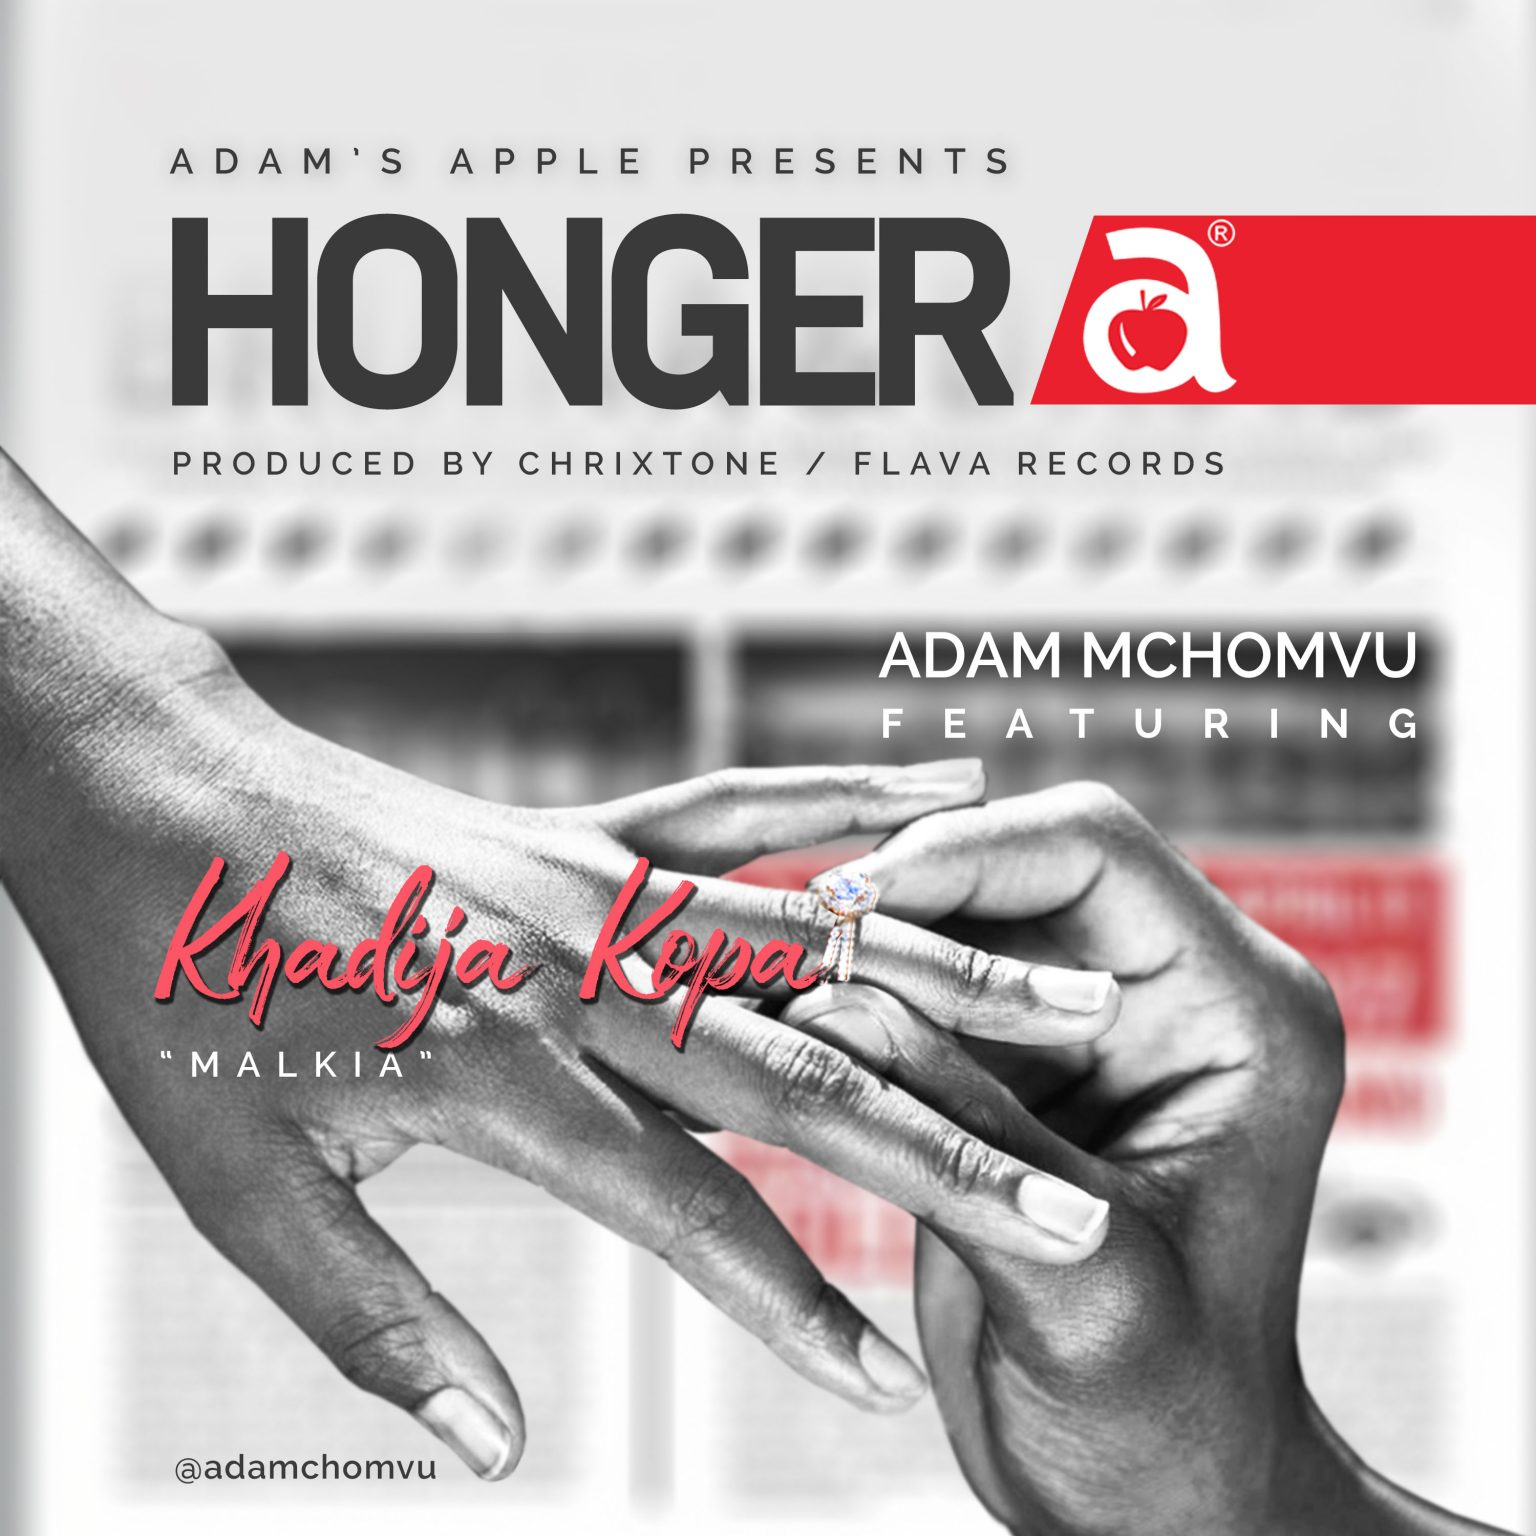 Photo of AUDIO: Adam Mchomvu Ft. Khadija Kopa – Hongera | Download mp3